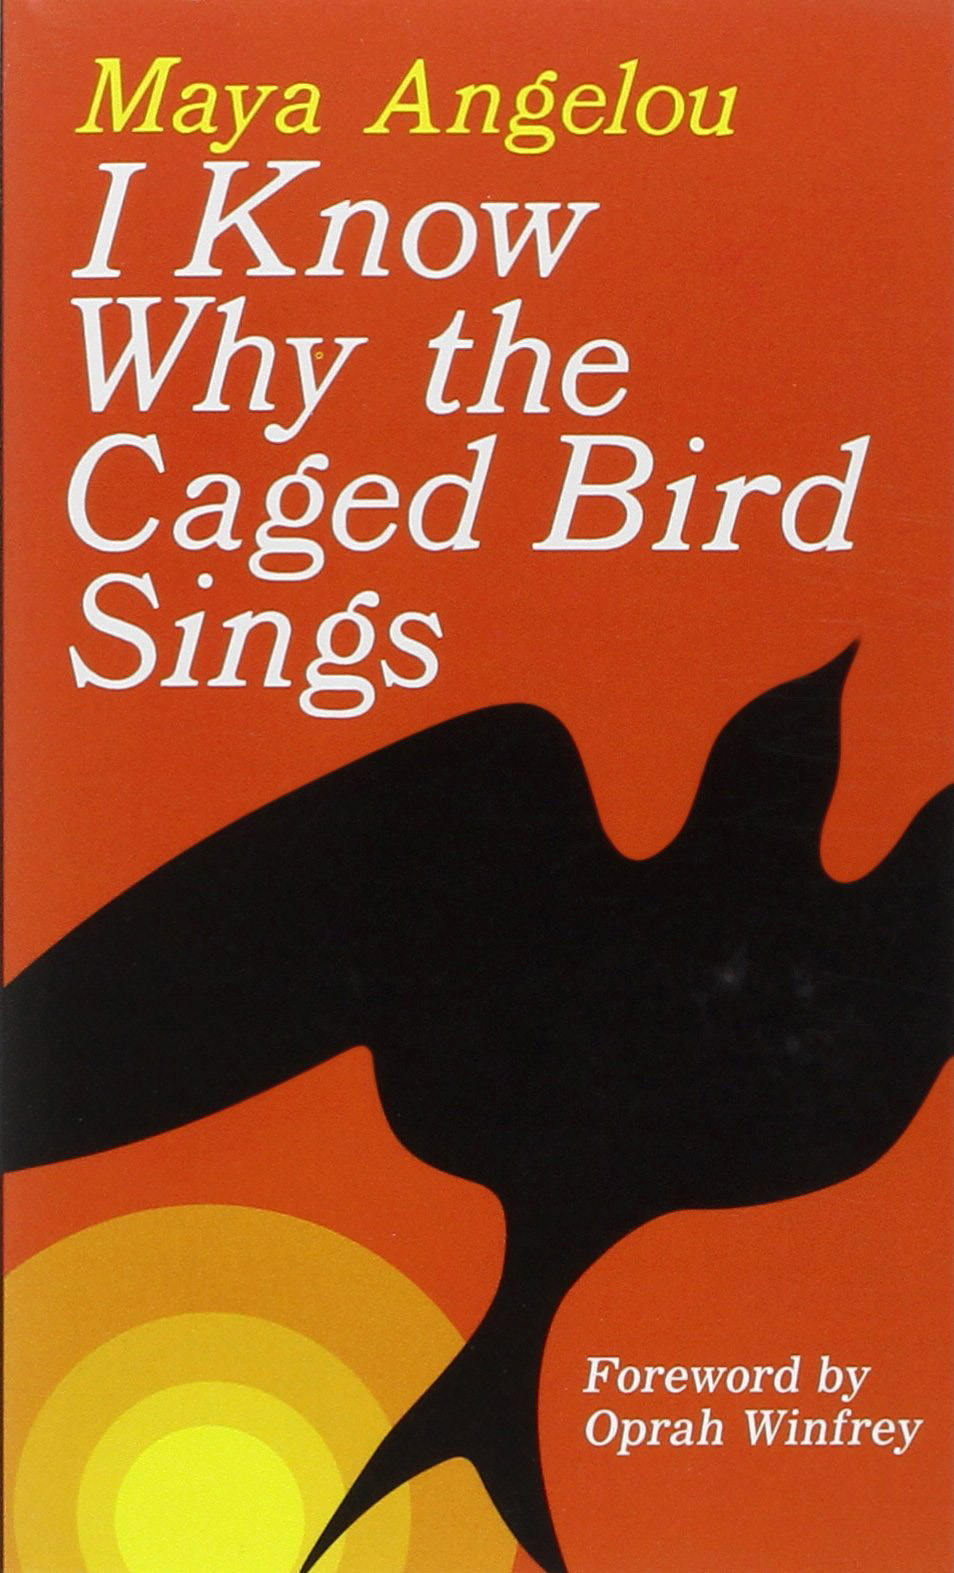 why-caged-bird-sings